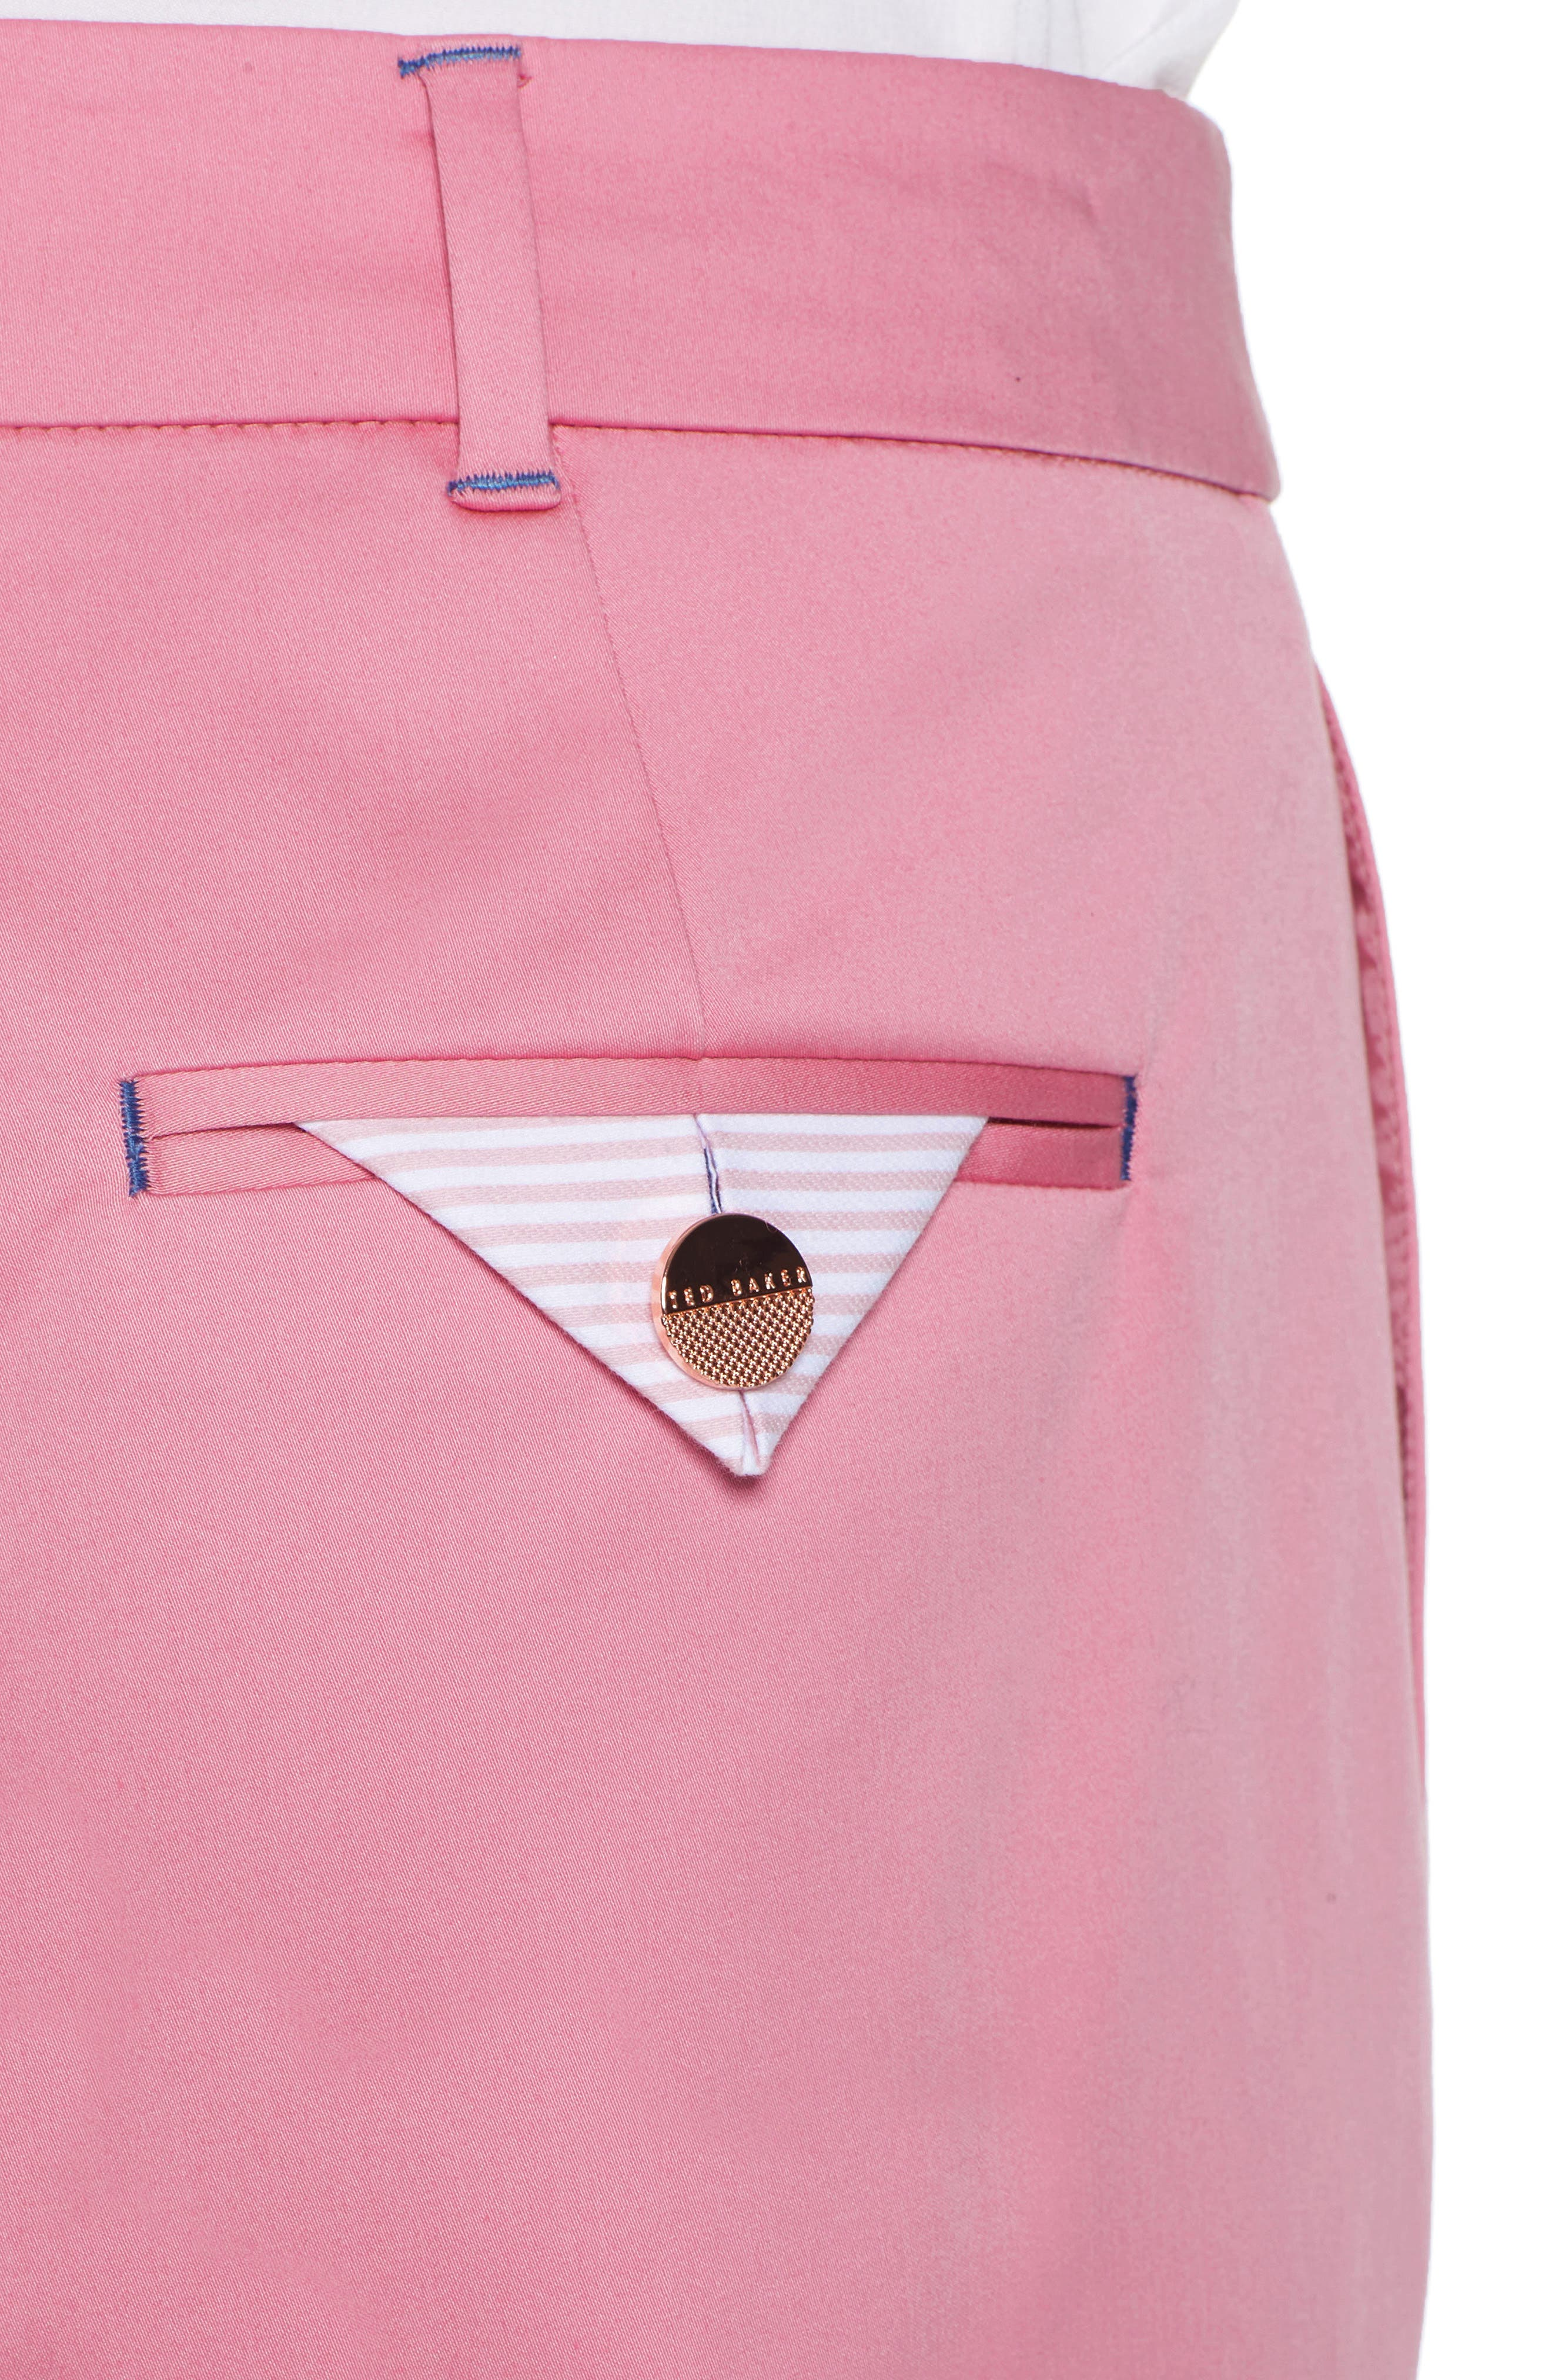 Saydii Deep Cuff Stretch Cotton Chino Pants,                             Alternate thumbnail 4, color,                             Dusky Pink